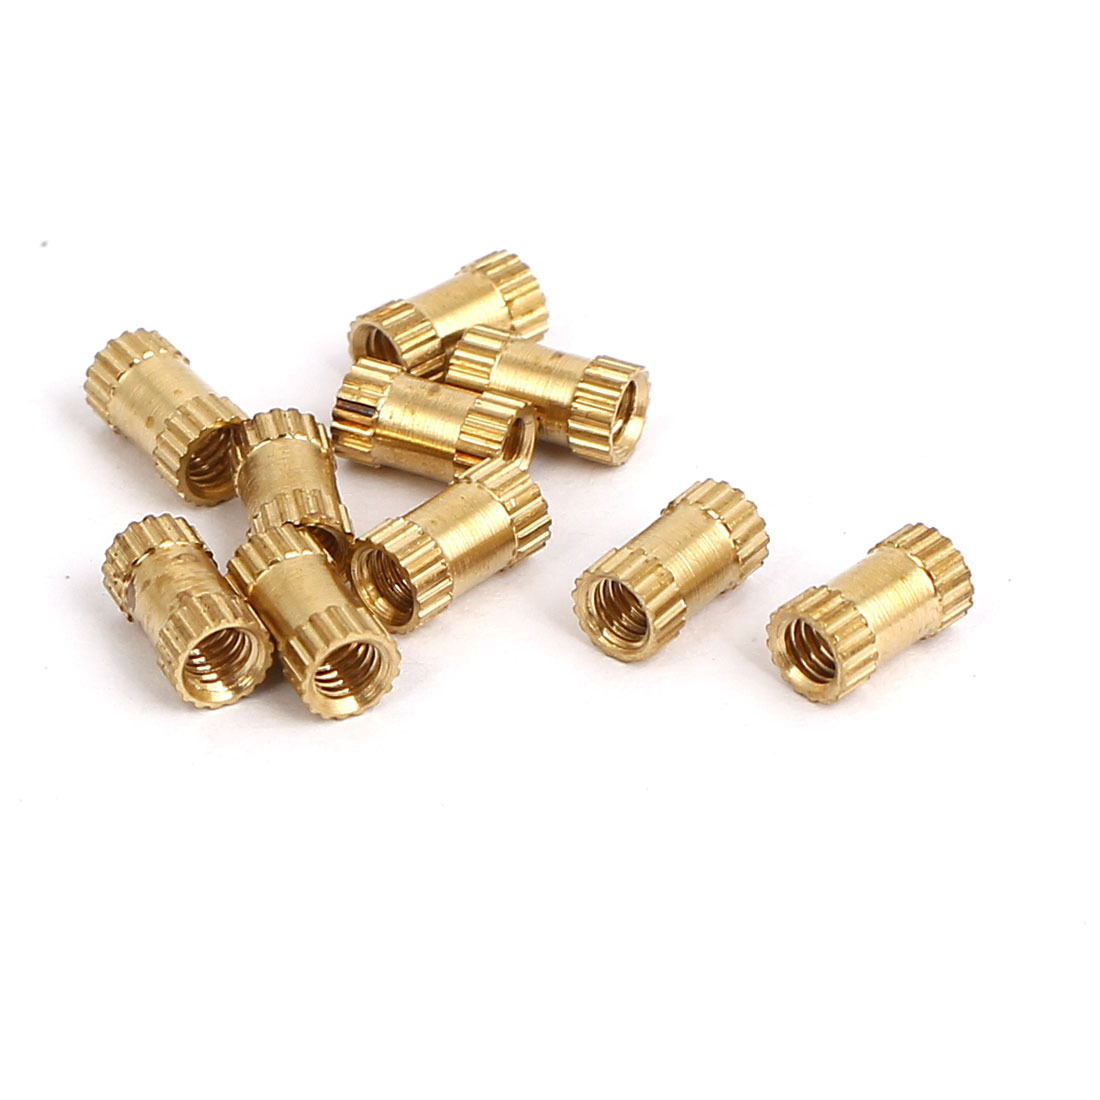 Unique Bargains M2.5x6mmx3.5mm Female Thread Brass Knurled Insert Embedded Nuts Gold Tone 10pcs